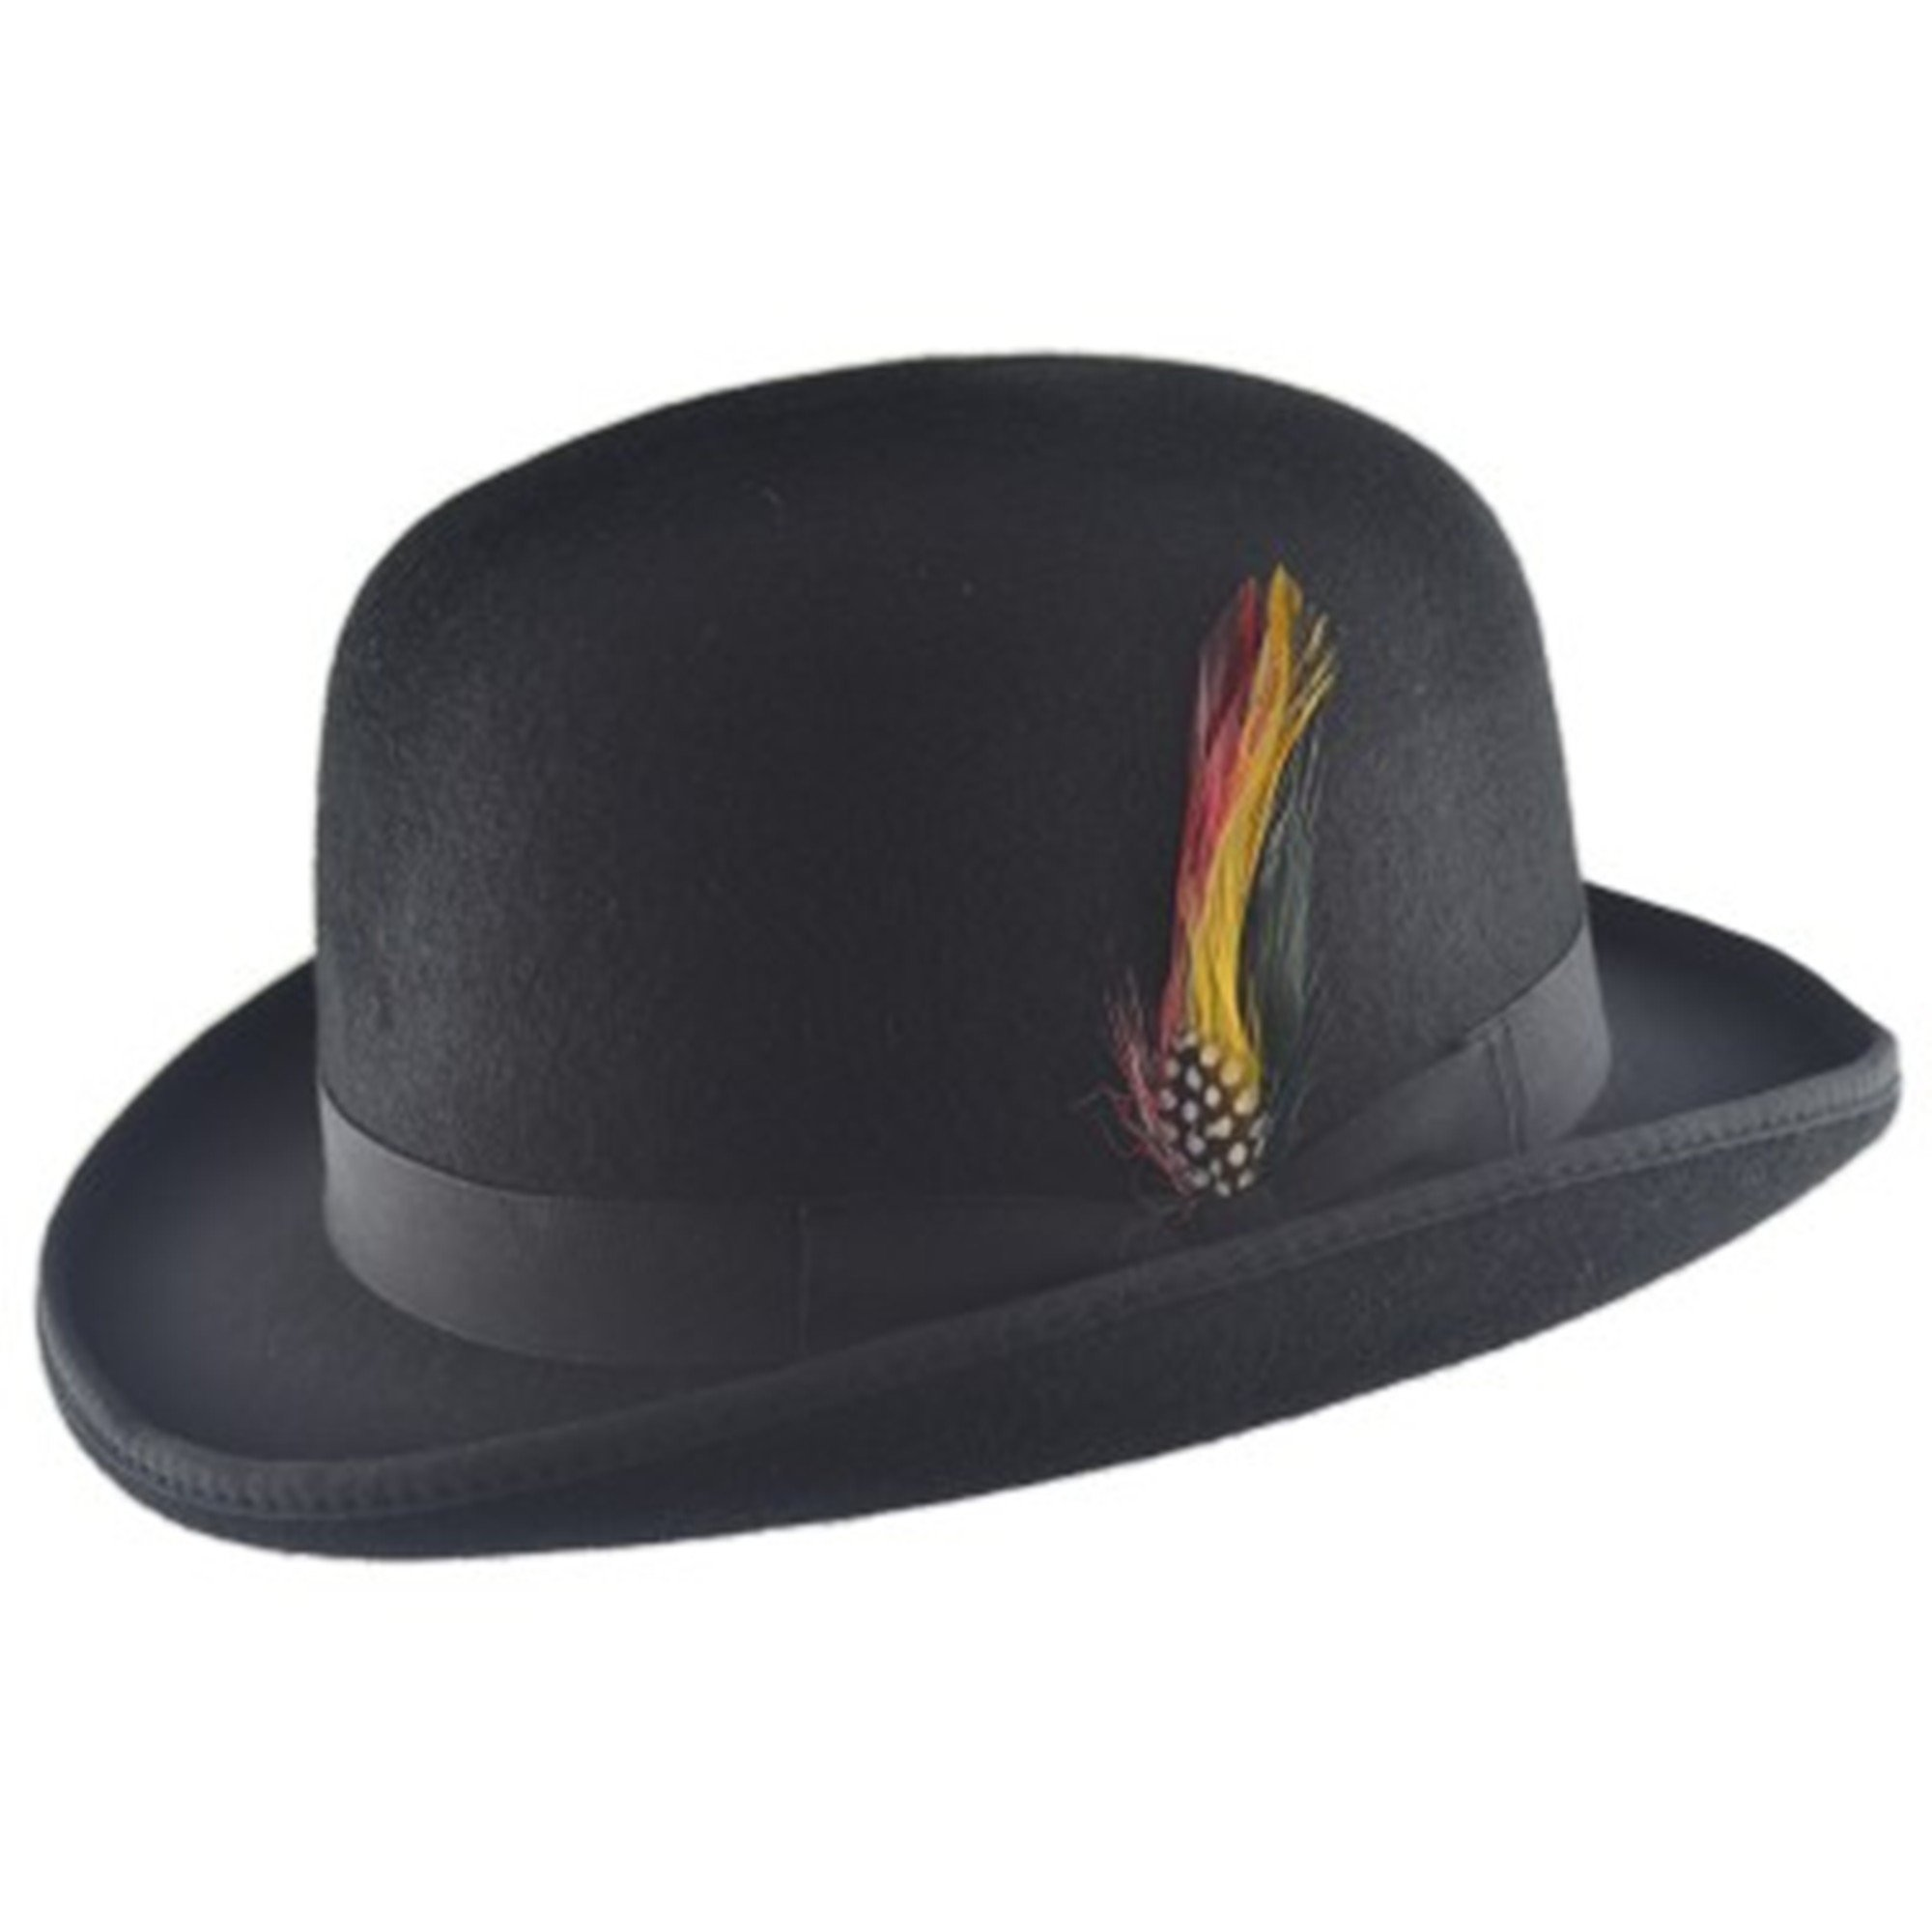 High Quality Hard Top 100% Wool Bowler Hat WITH Feather - Satin Lined -  Sizes 3f1b53eeb9ea